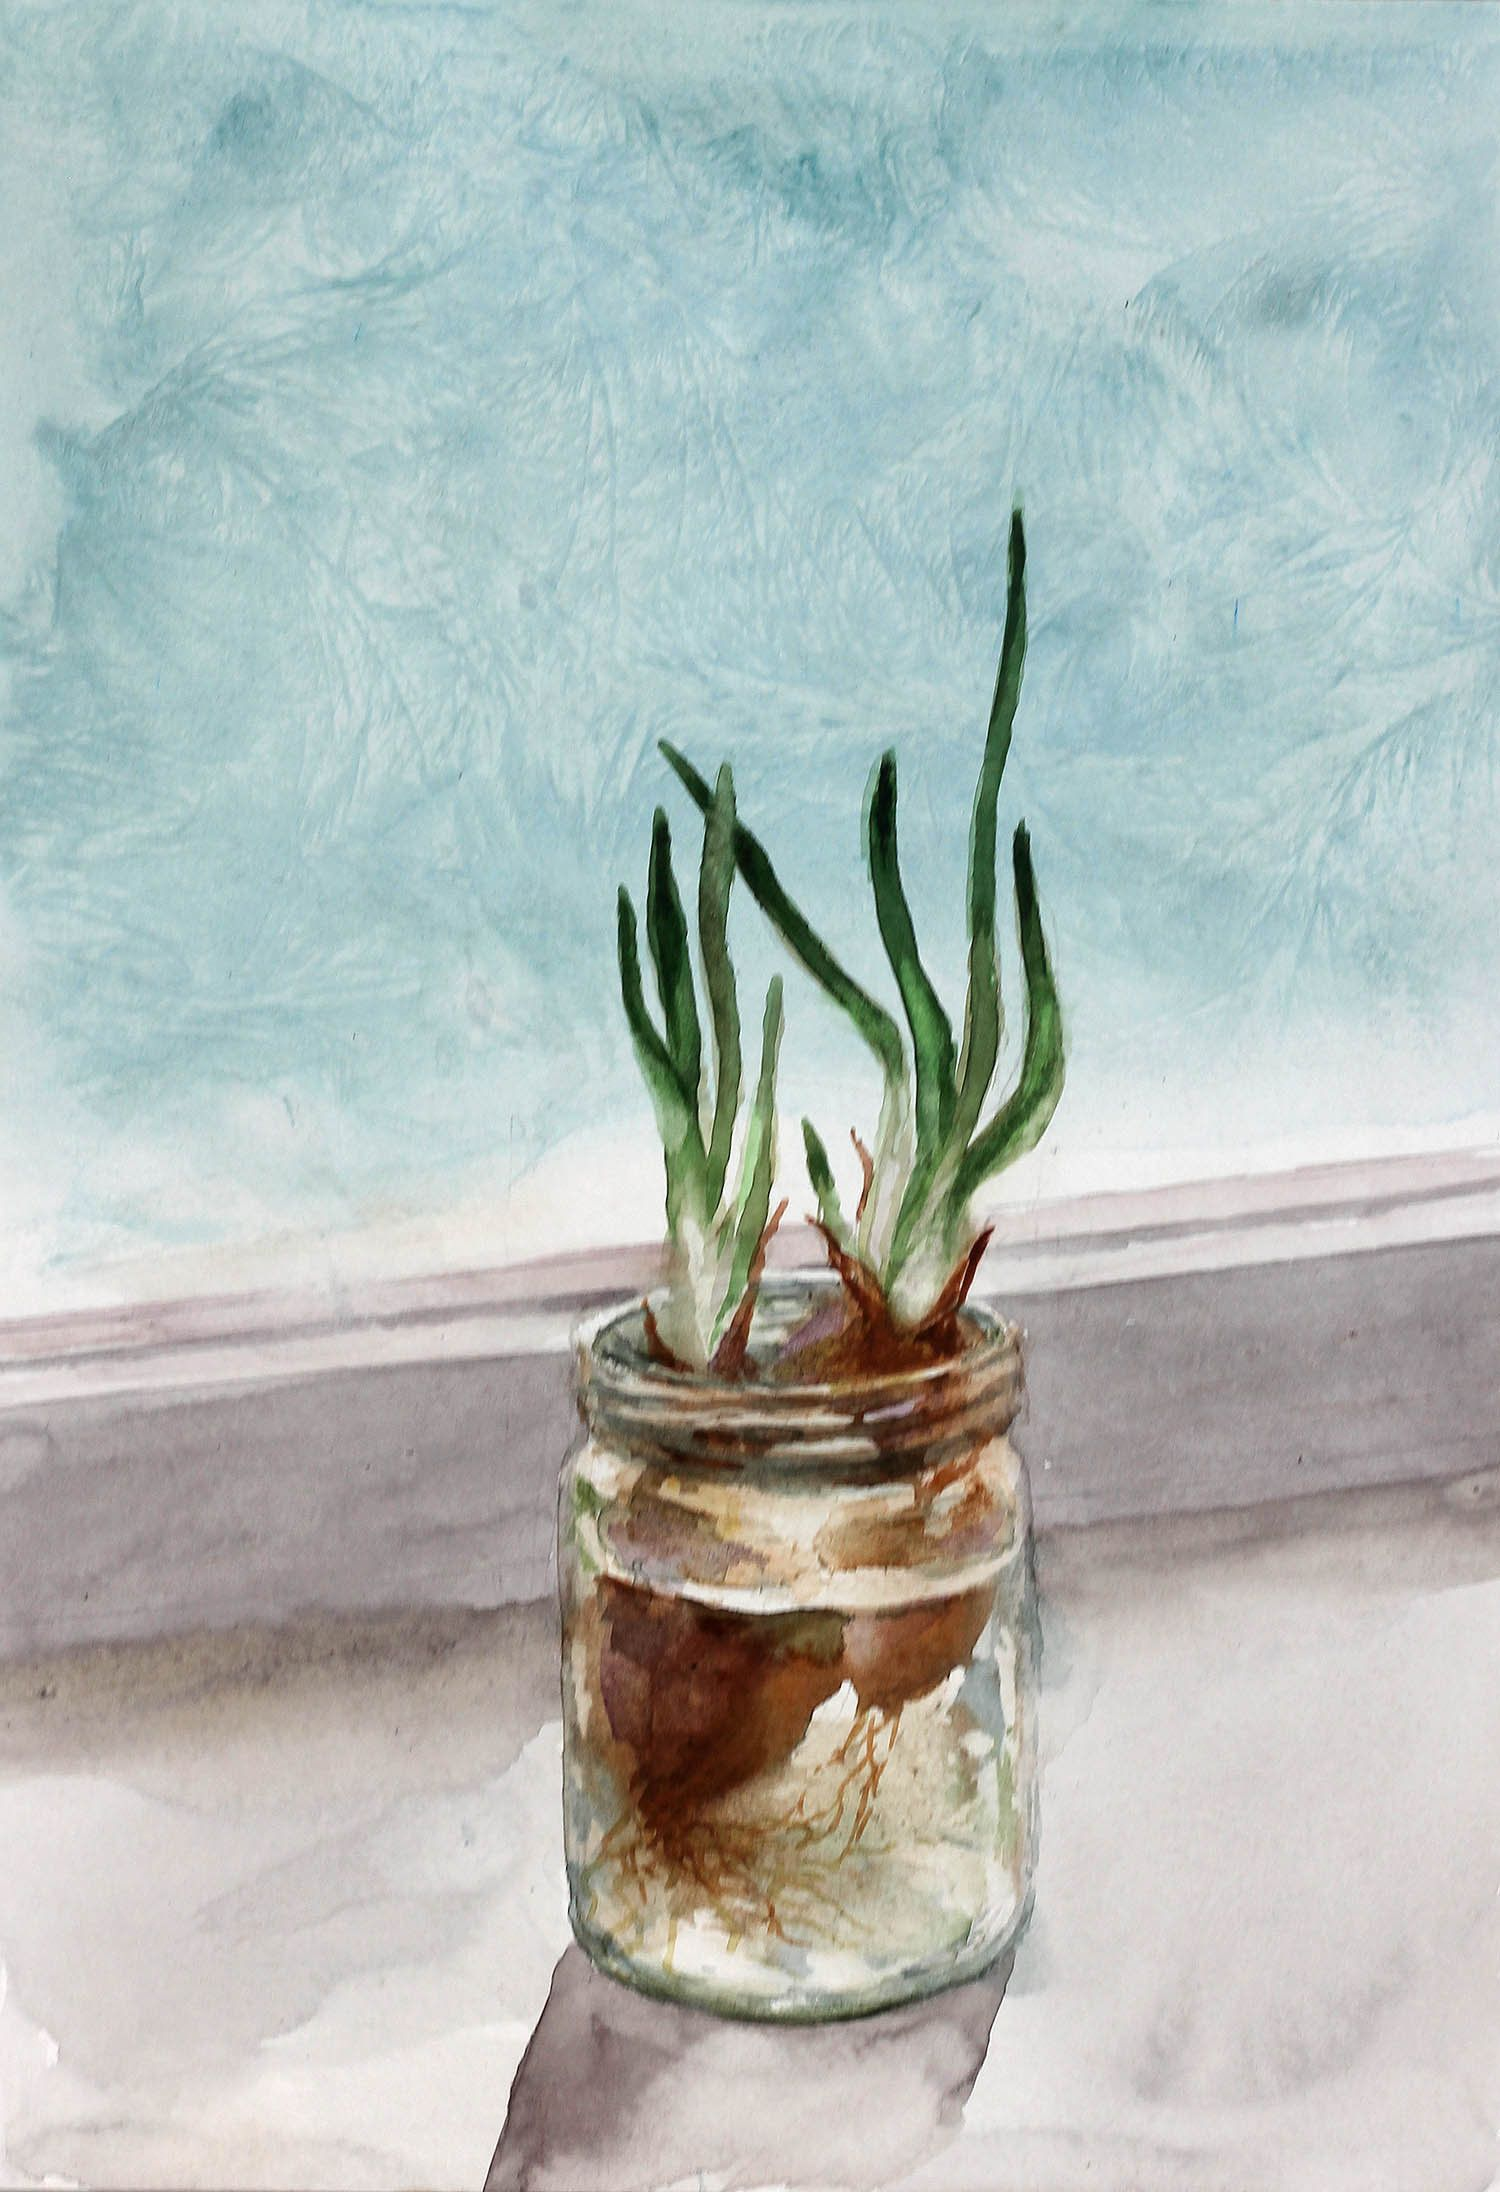 Green Onion Winter Window Original Watercolor Painting Art Kitchen